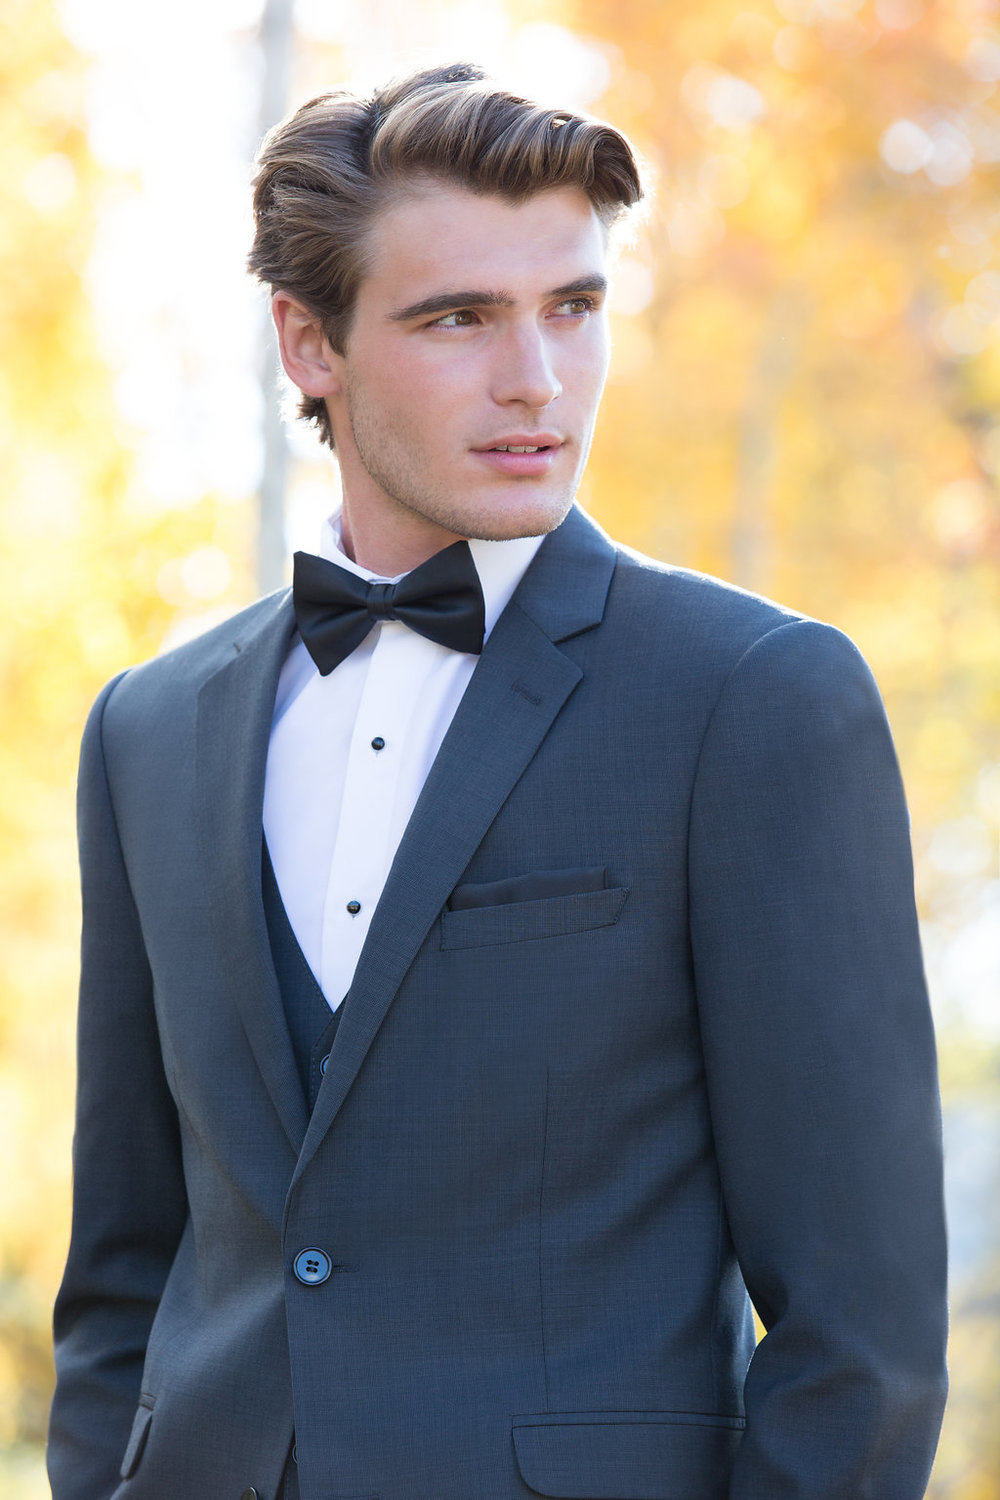 Tuxedos & Suits -